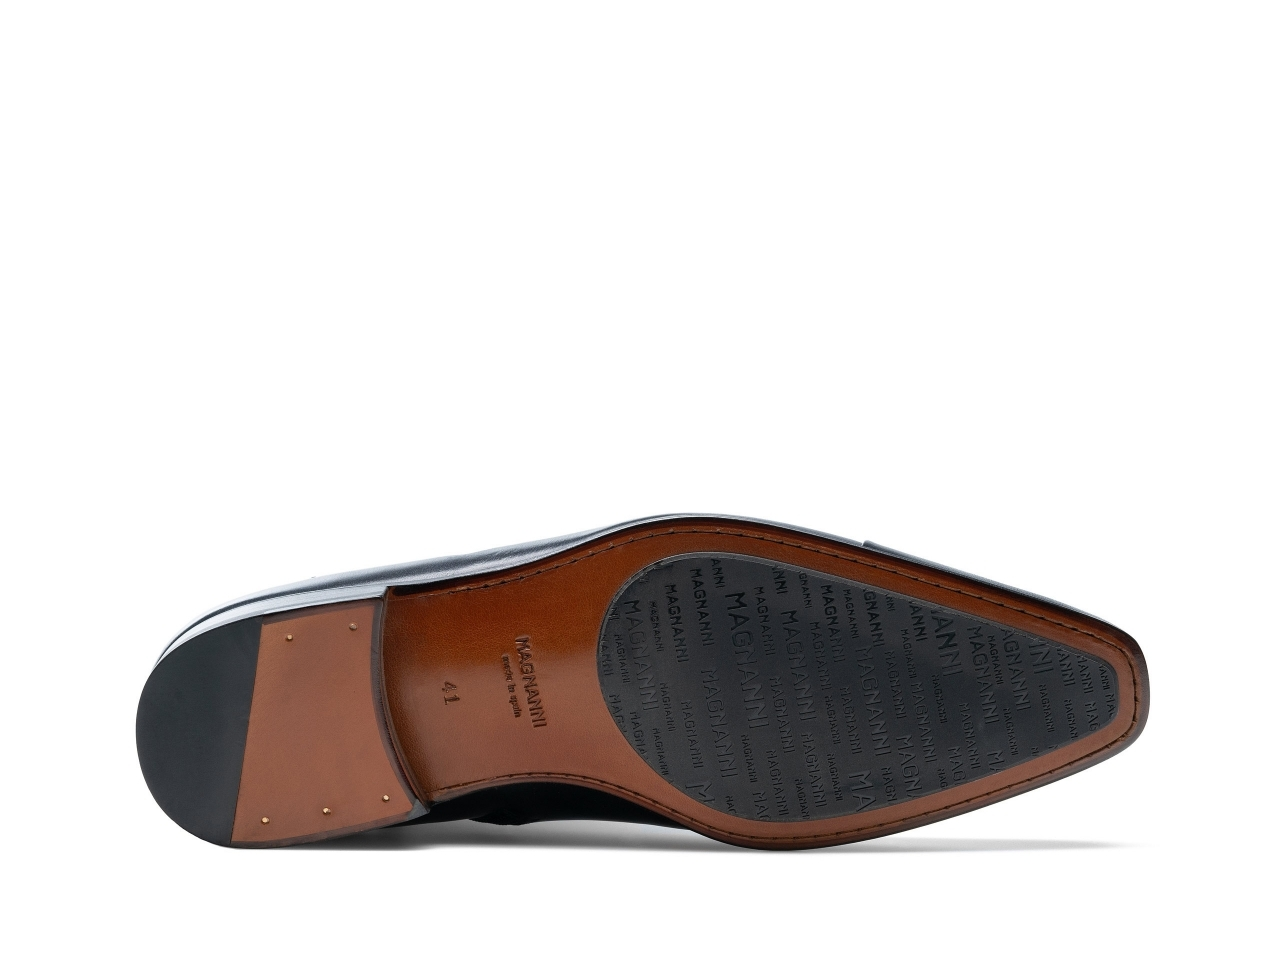 The sole of the Abada